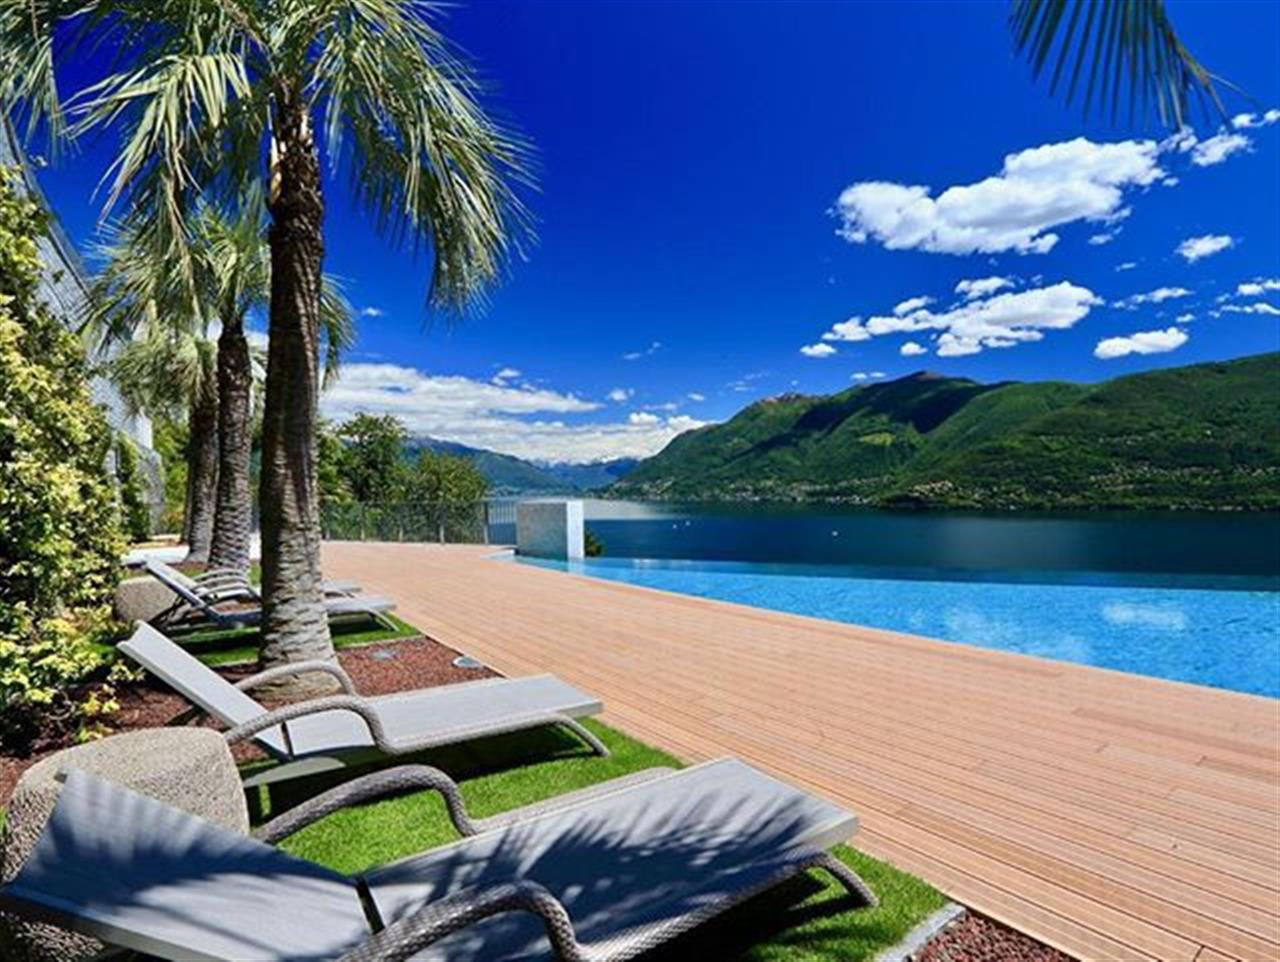 We can't wait for summer in #Ticino. This beautiful pic is from a luxury #apartmentforsale in #Brissago, #Switzerland at #LakeMaggiore - For more information about this apartment, please search with ref. 88407 at our website or visit bit.ly/88407-en  #luxuryrealestate #inlovewithswitzerland #luxurylife #luxurylifestyle #christiesrealestate #luxuryportfolio #wetagconsulting #leadingre #ChristiesHomes #LeadingRElocal